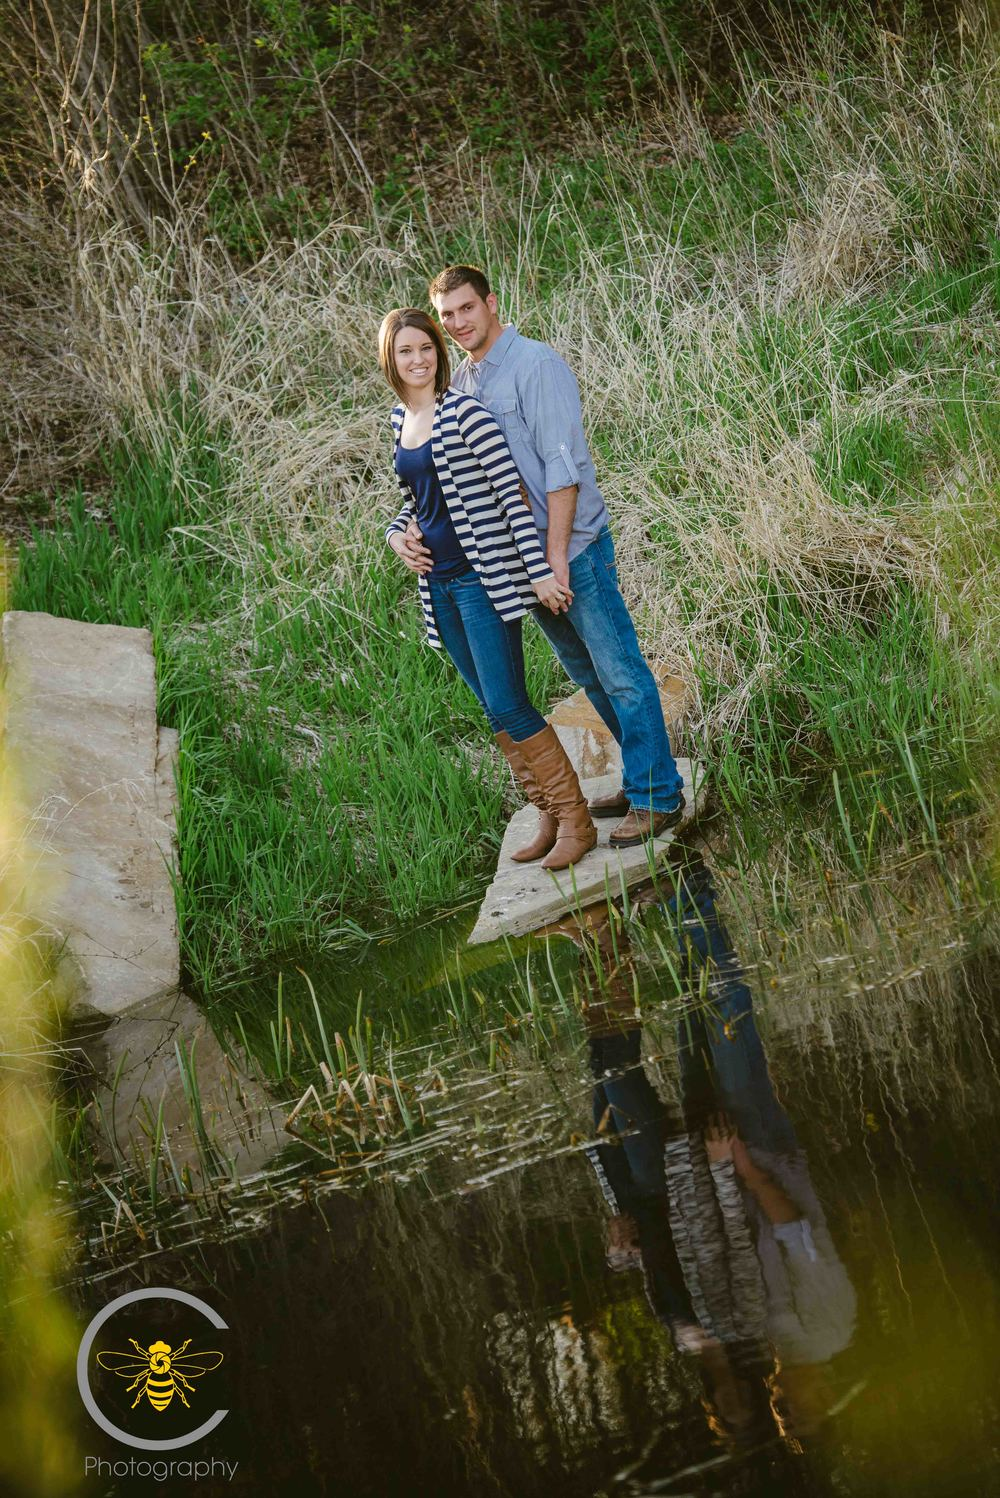 Bee-C-Photography-Engagement-Rustic-Adorable Couple-8.jpg